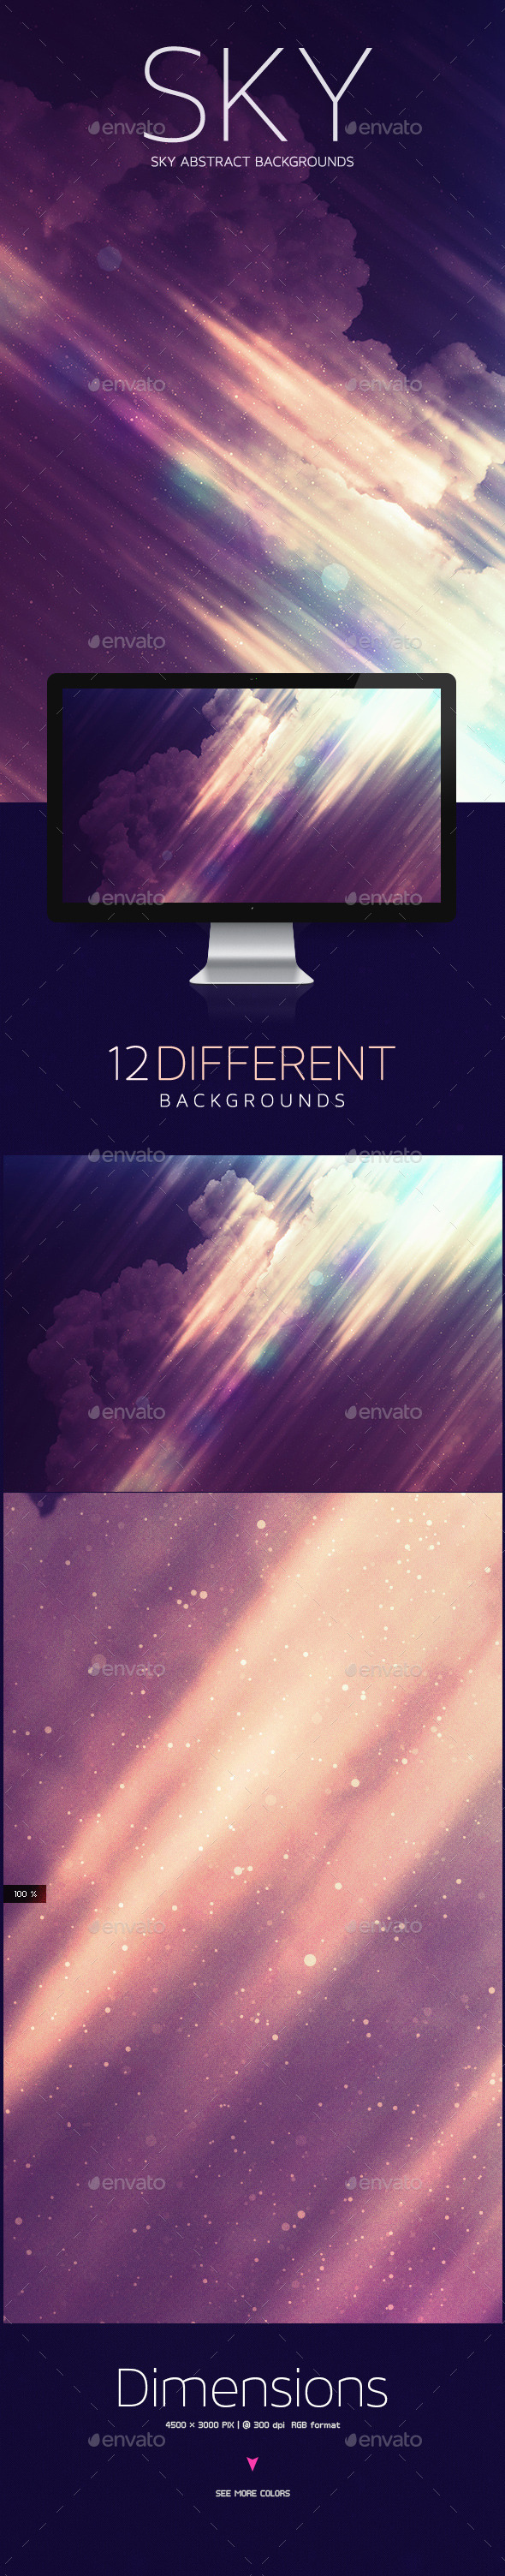 GraphicRiver SKY Abstract Backgrounds 10463047